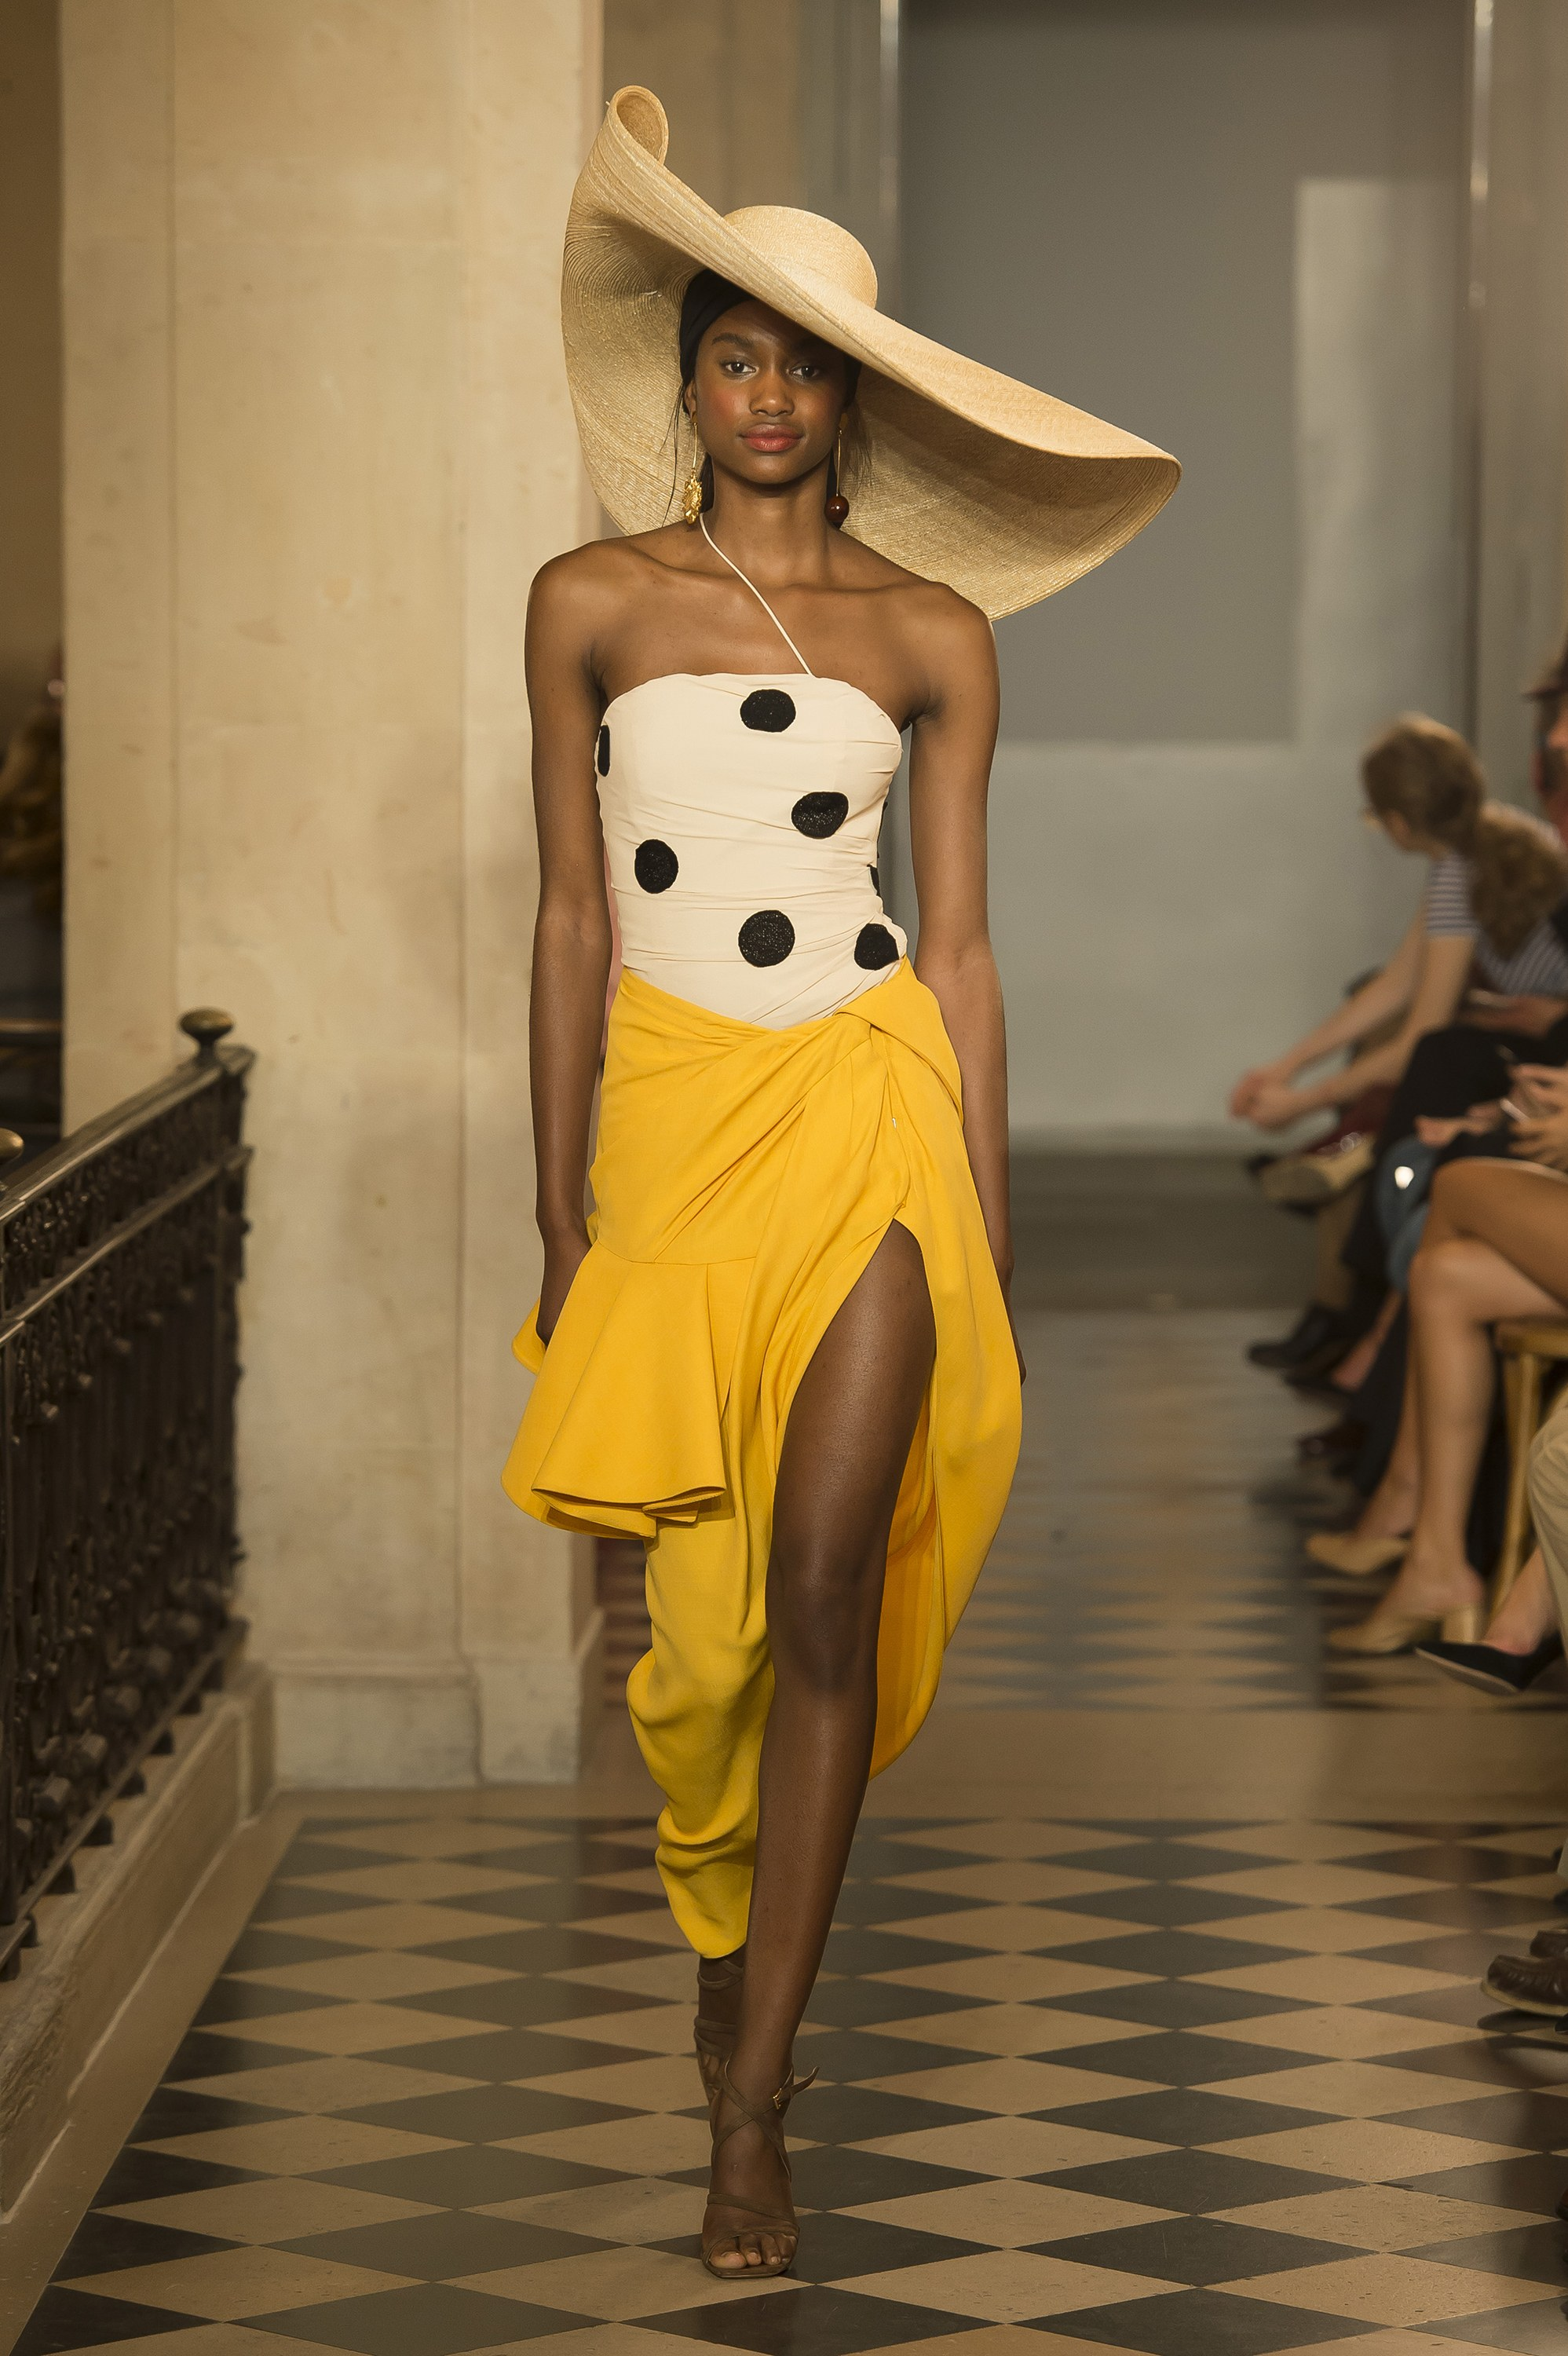 Jacquemus Spring 2018 - Image via Vogue - Summer Fashion Trends 2018 - oversized hat trend - hats 2018 - summer outfit ideas